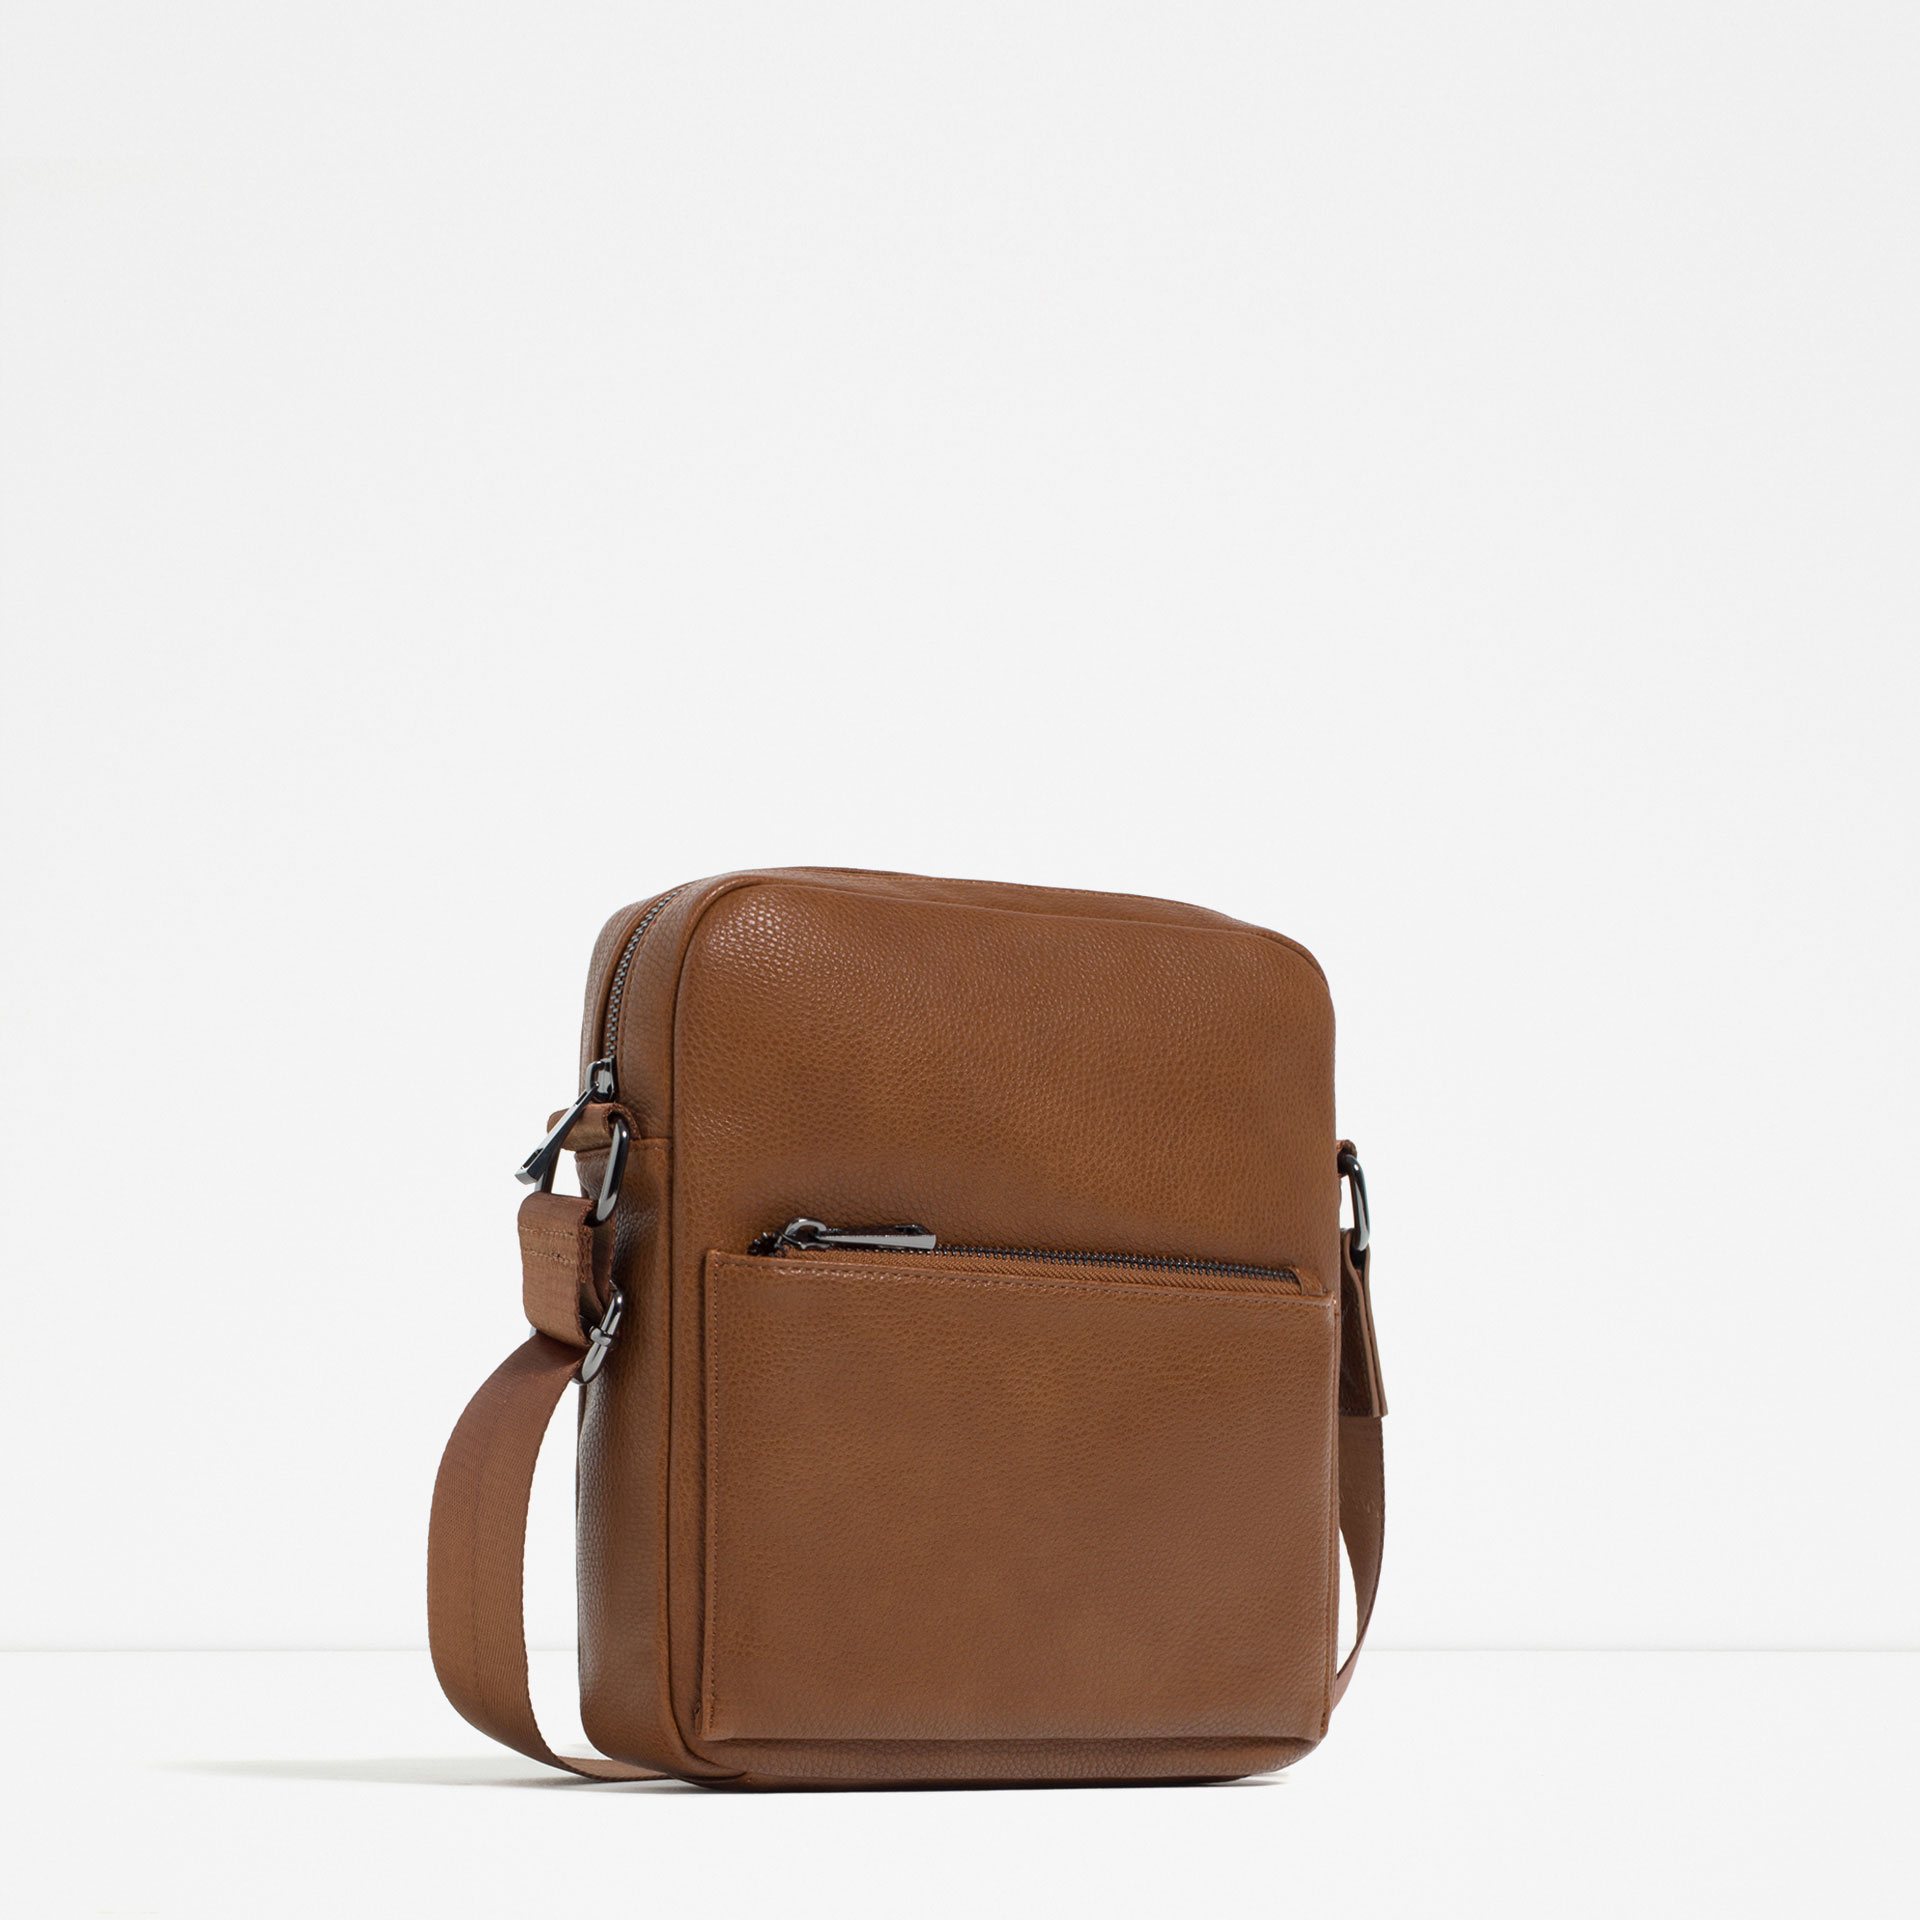 Zara Mini Brown Crossbody Bag In Brown For Men | Lyst